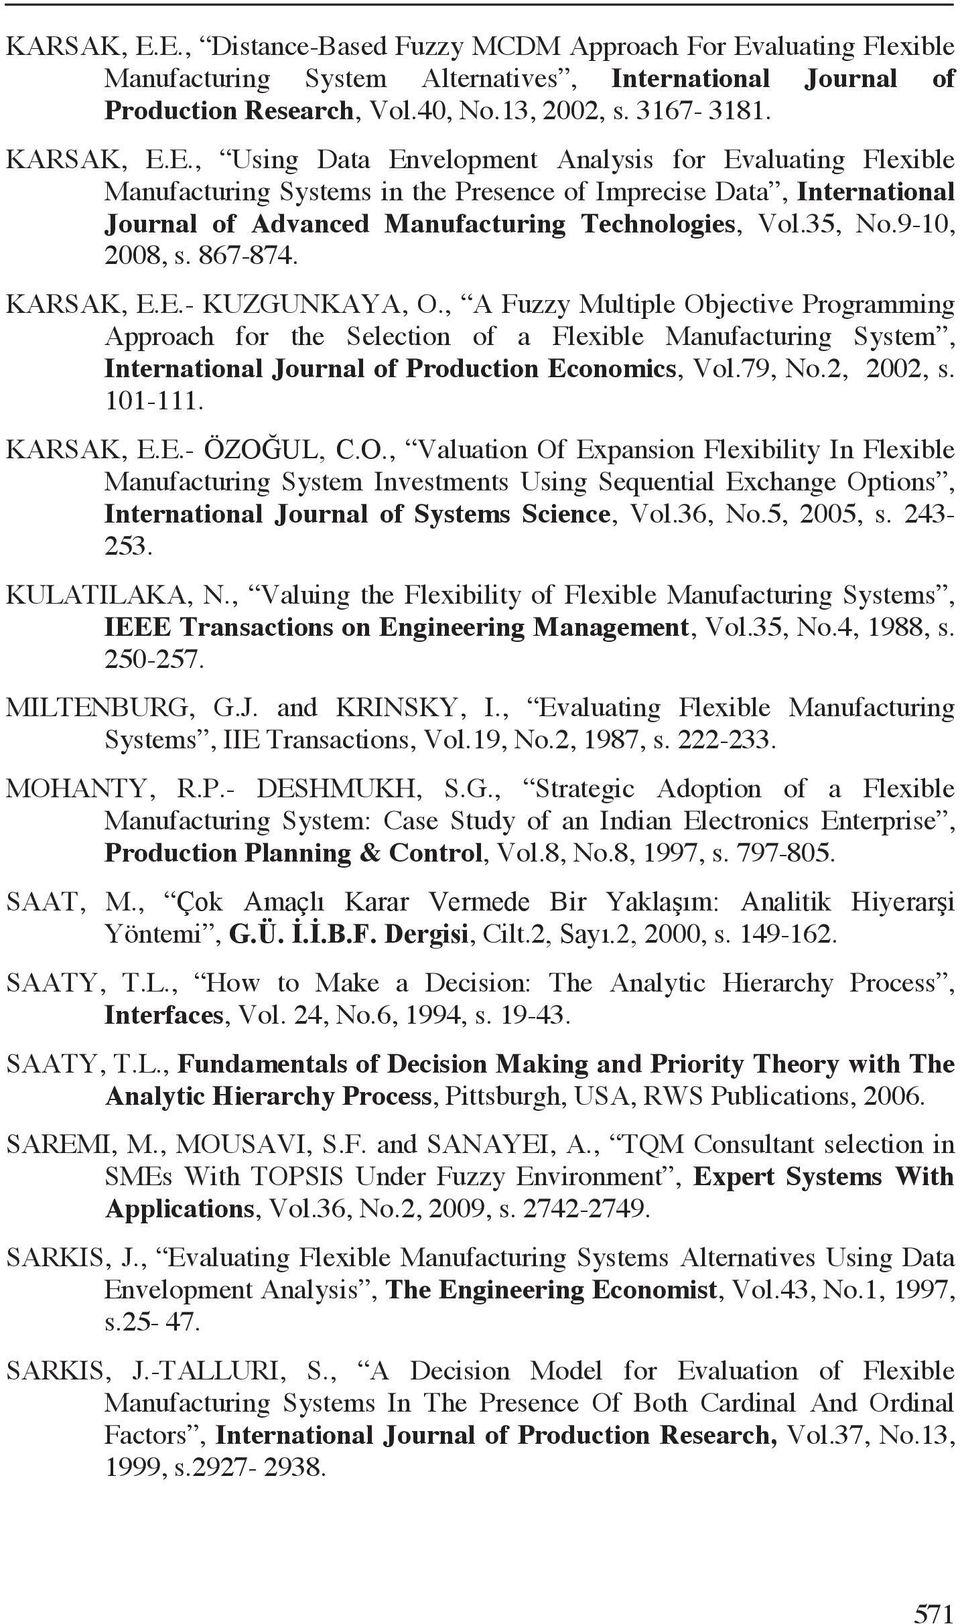 , A Fuzzy Multiple Objective Programming Approach for the Selection of a Fleible Manufacturing System, International Journal of Production Ec